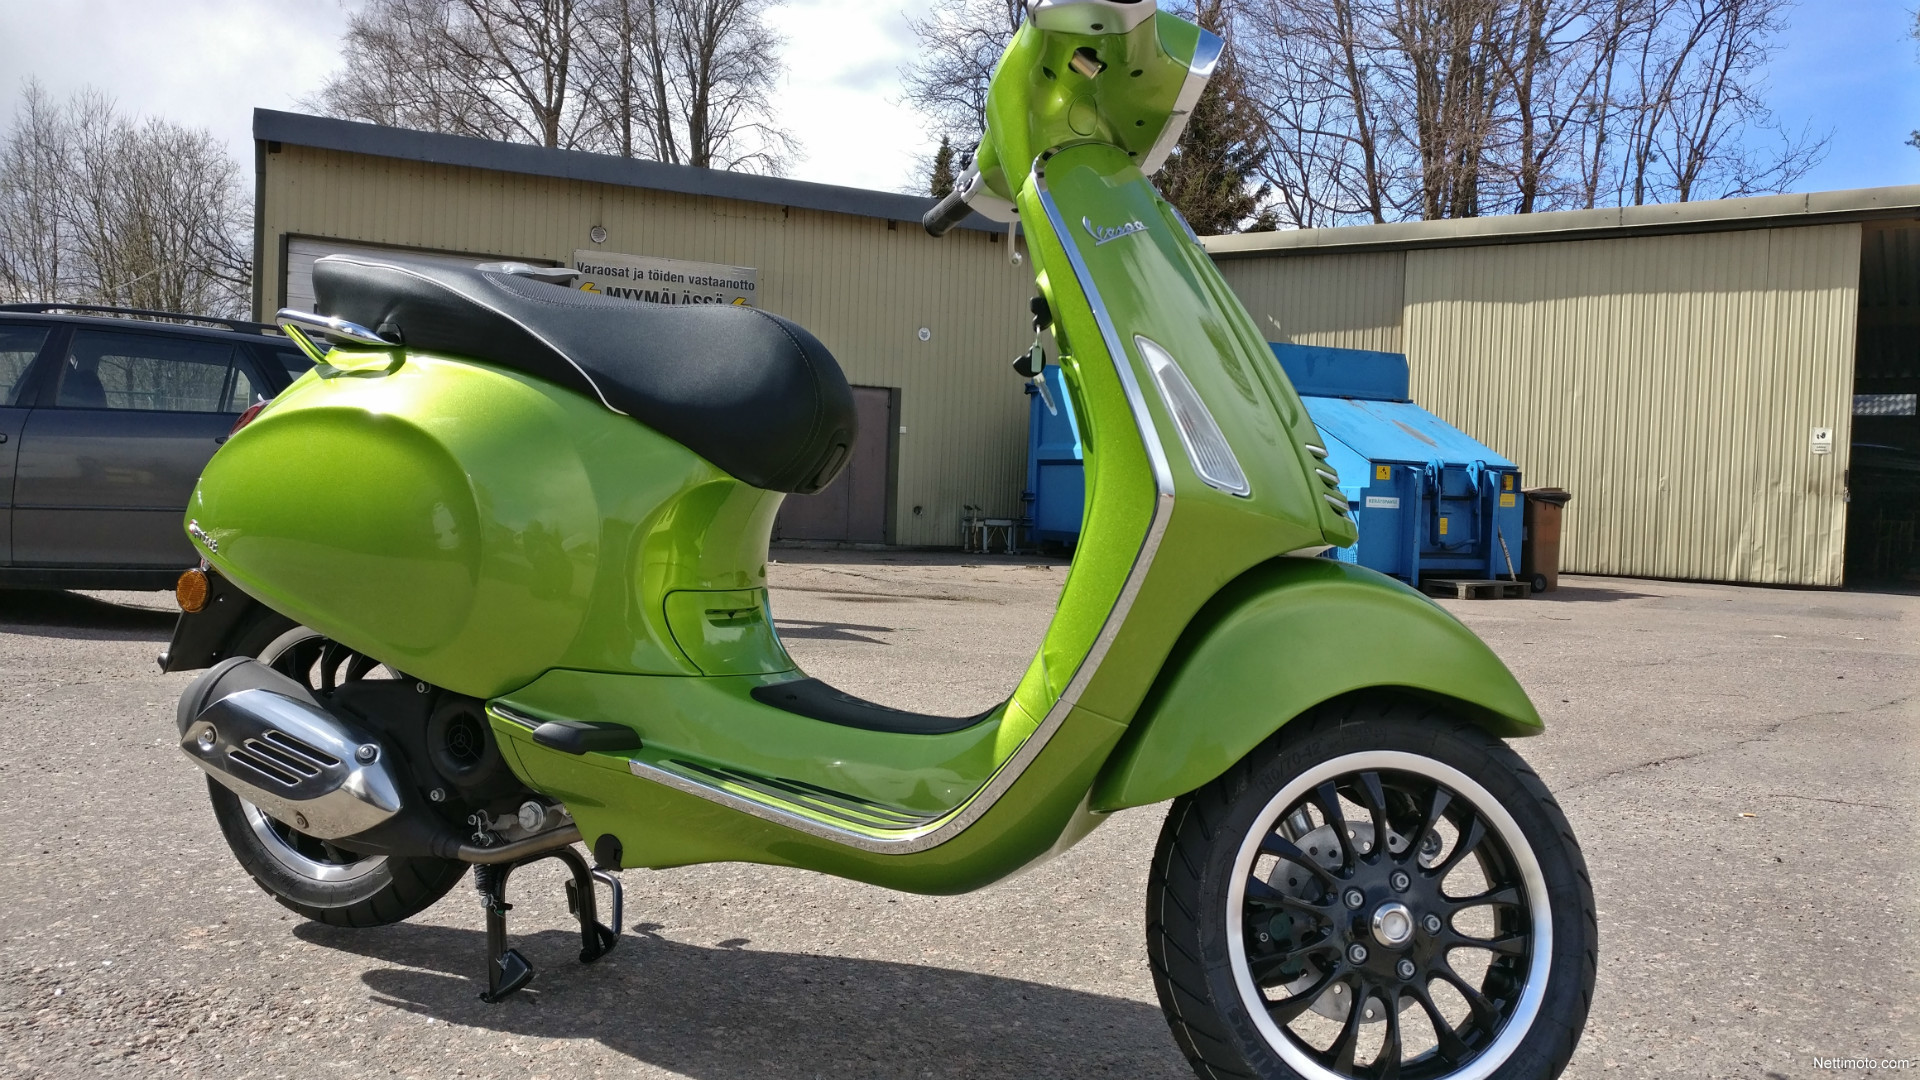 vespa sprint 50 4t 50 cm 2017 kotka scooter nettimoto. Black Bedroom Furniture Sets. Home Design Ideas